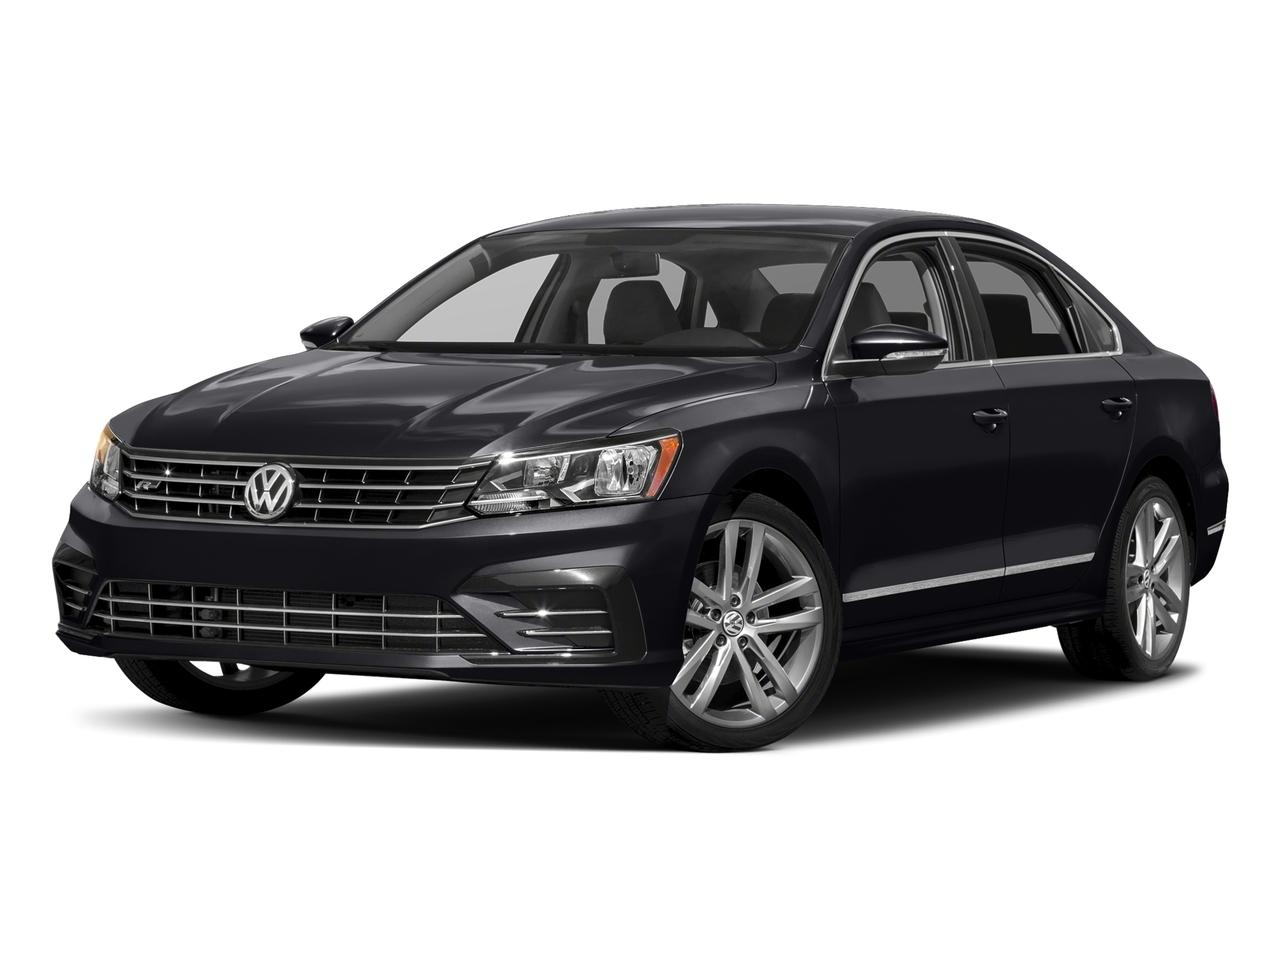 2018 Volkswagen Passat Vehicle Photo in Mission, TX 78572